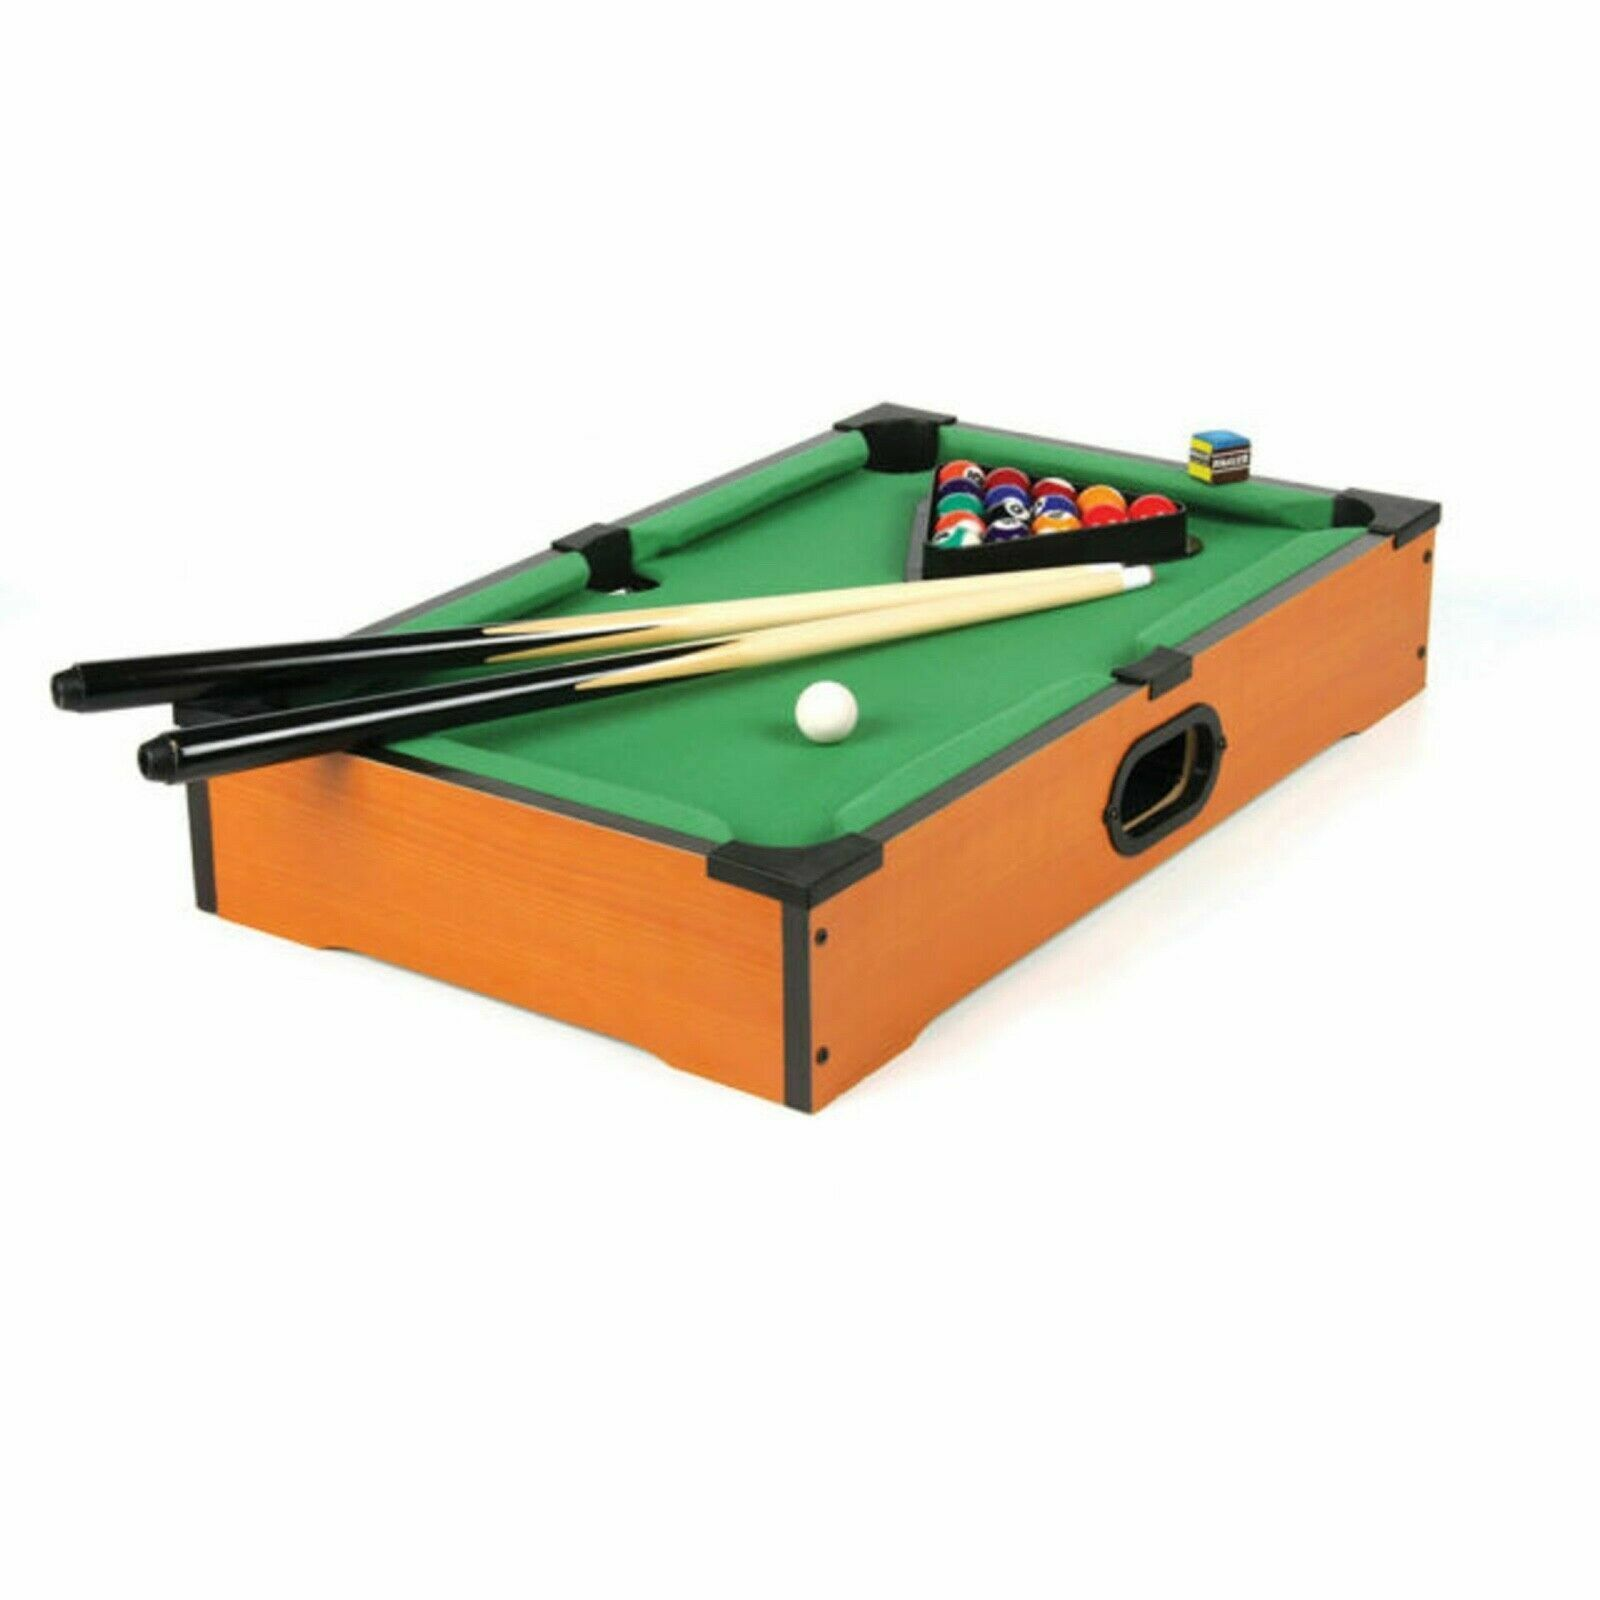 WOODEN TABLE TOP MINI DELUXE KIDS FAMILY  POOL PLAY SET CUES BALLS SNOOKER GAME